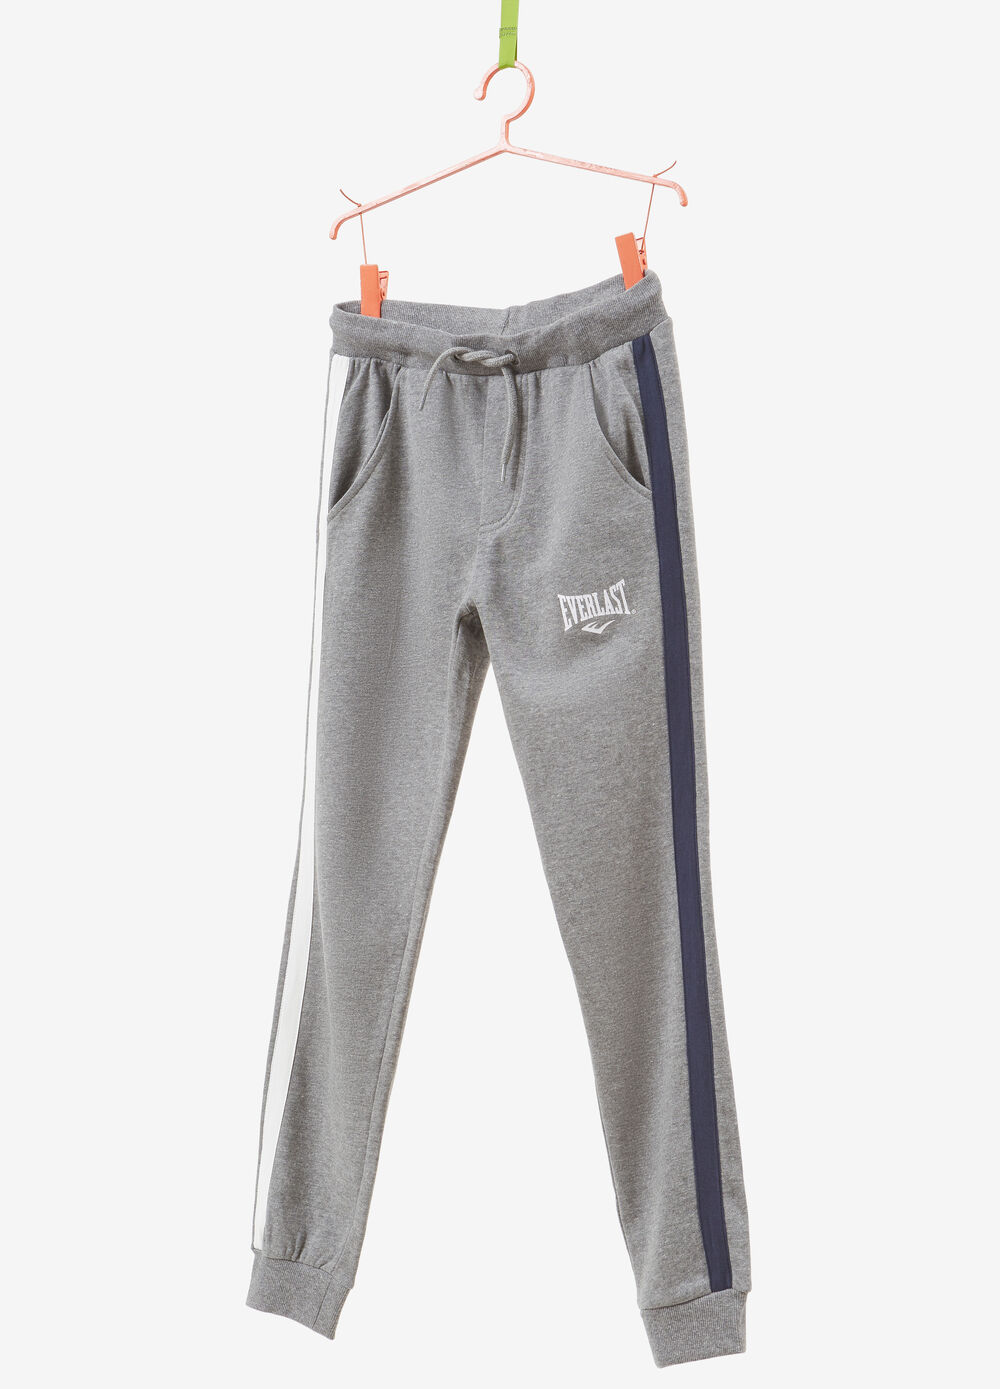 Everlast 100% cotton trousers with side bands